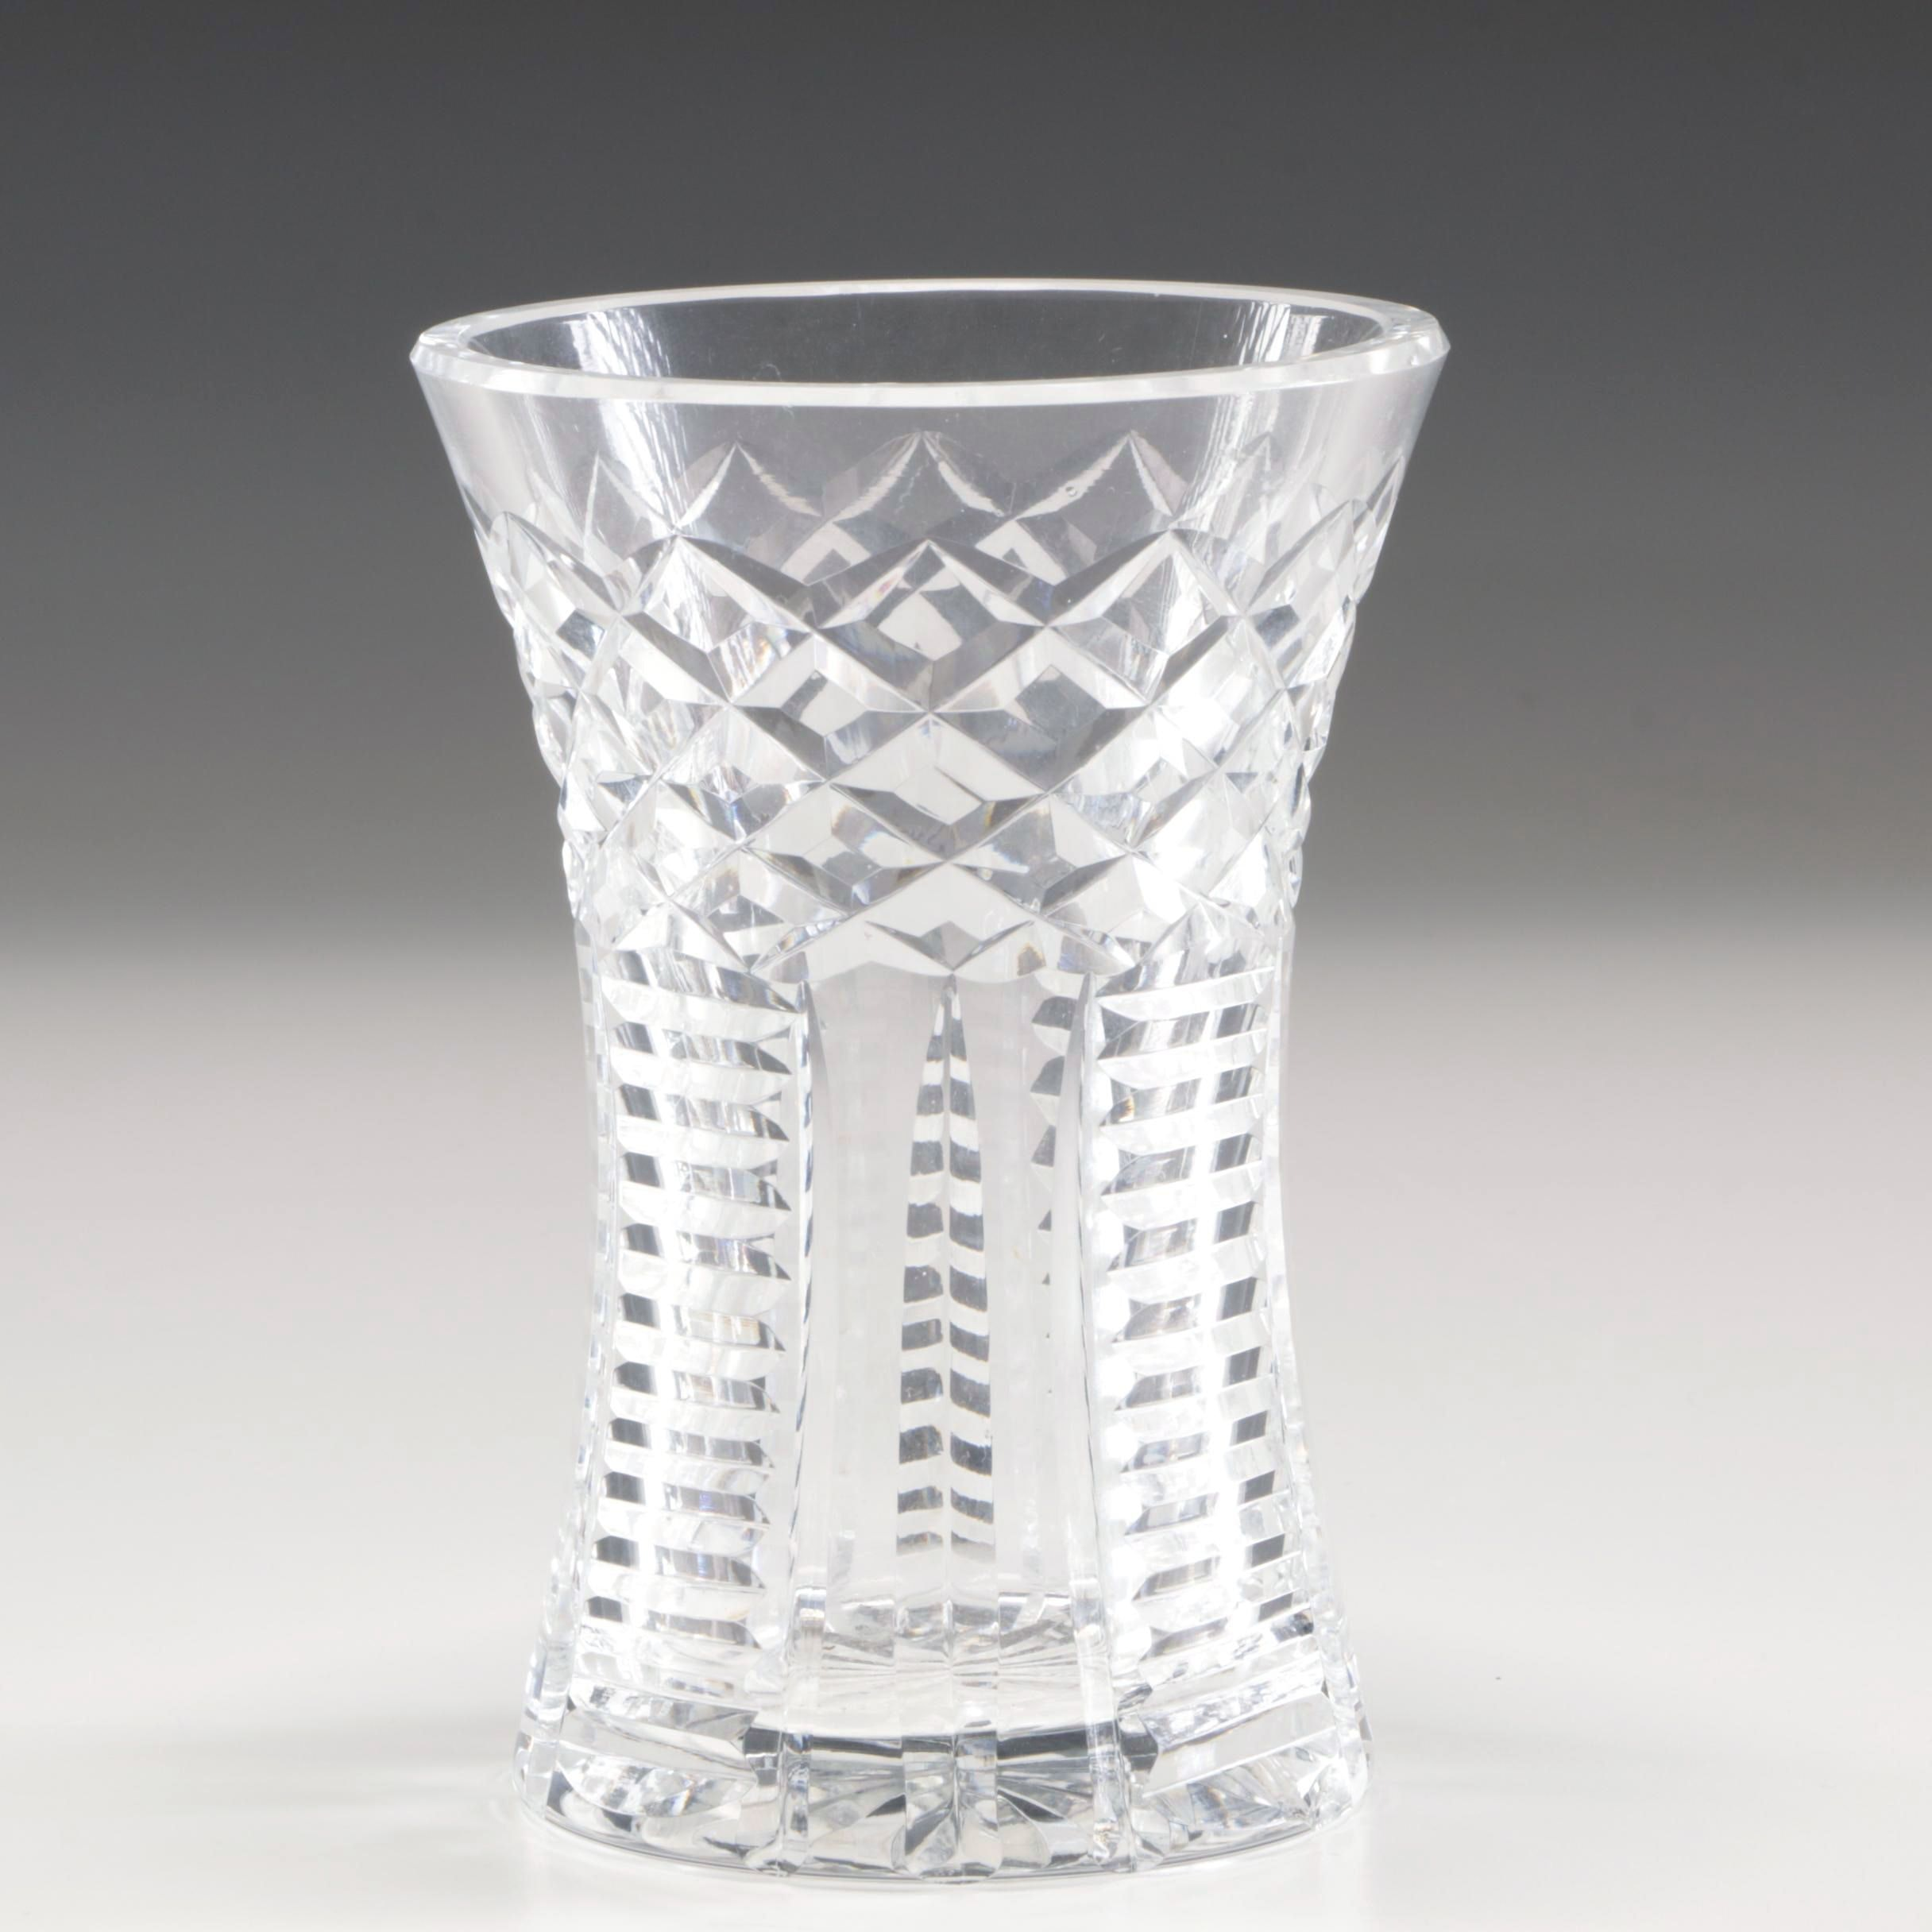 Waterford Crystal Flower Vase & Waterford Crystal Flower Vase | EBTH